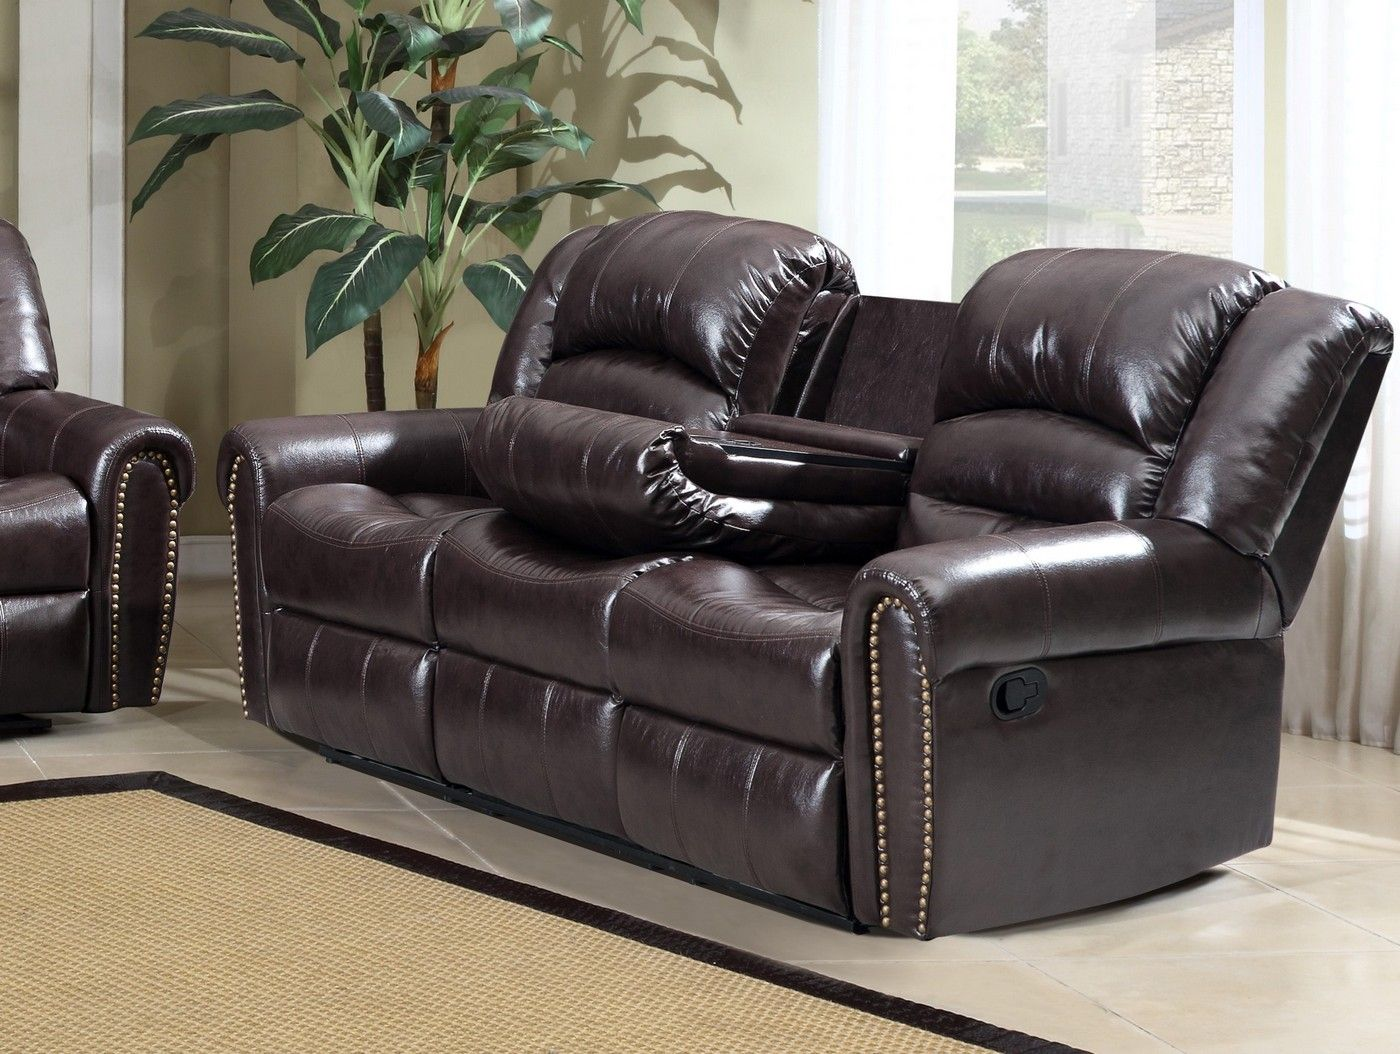 684 Brown Leather Reclining Sofa With Console And Nailhead ...